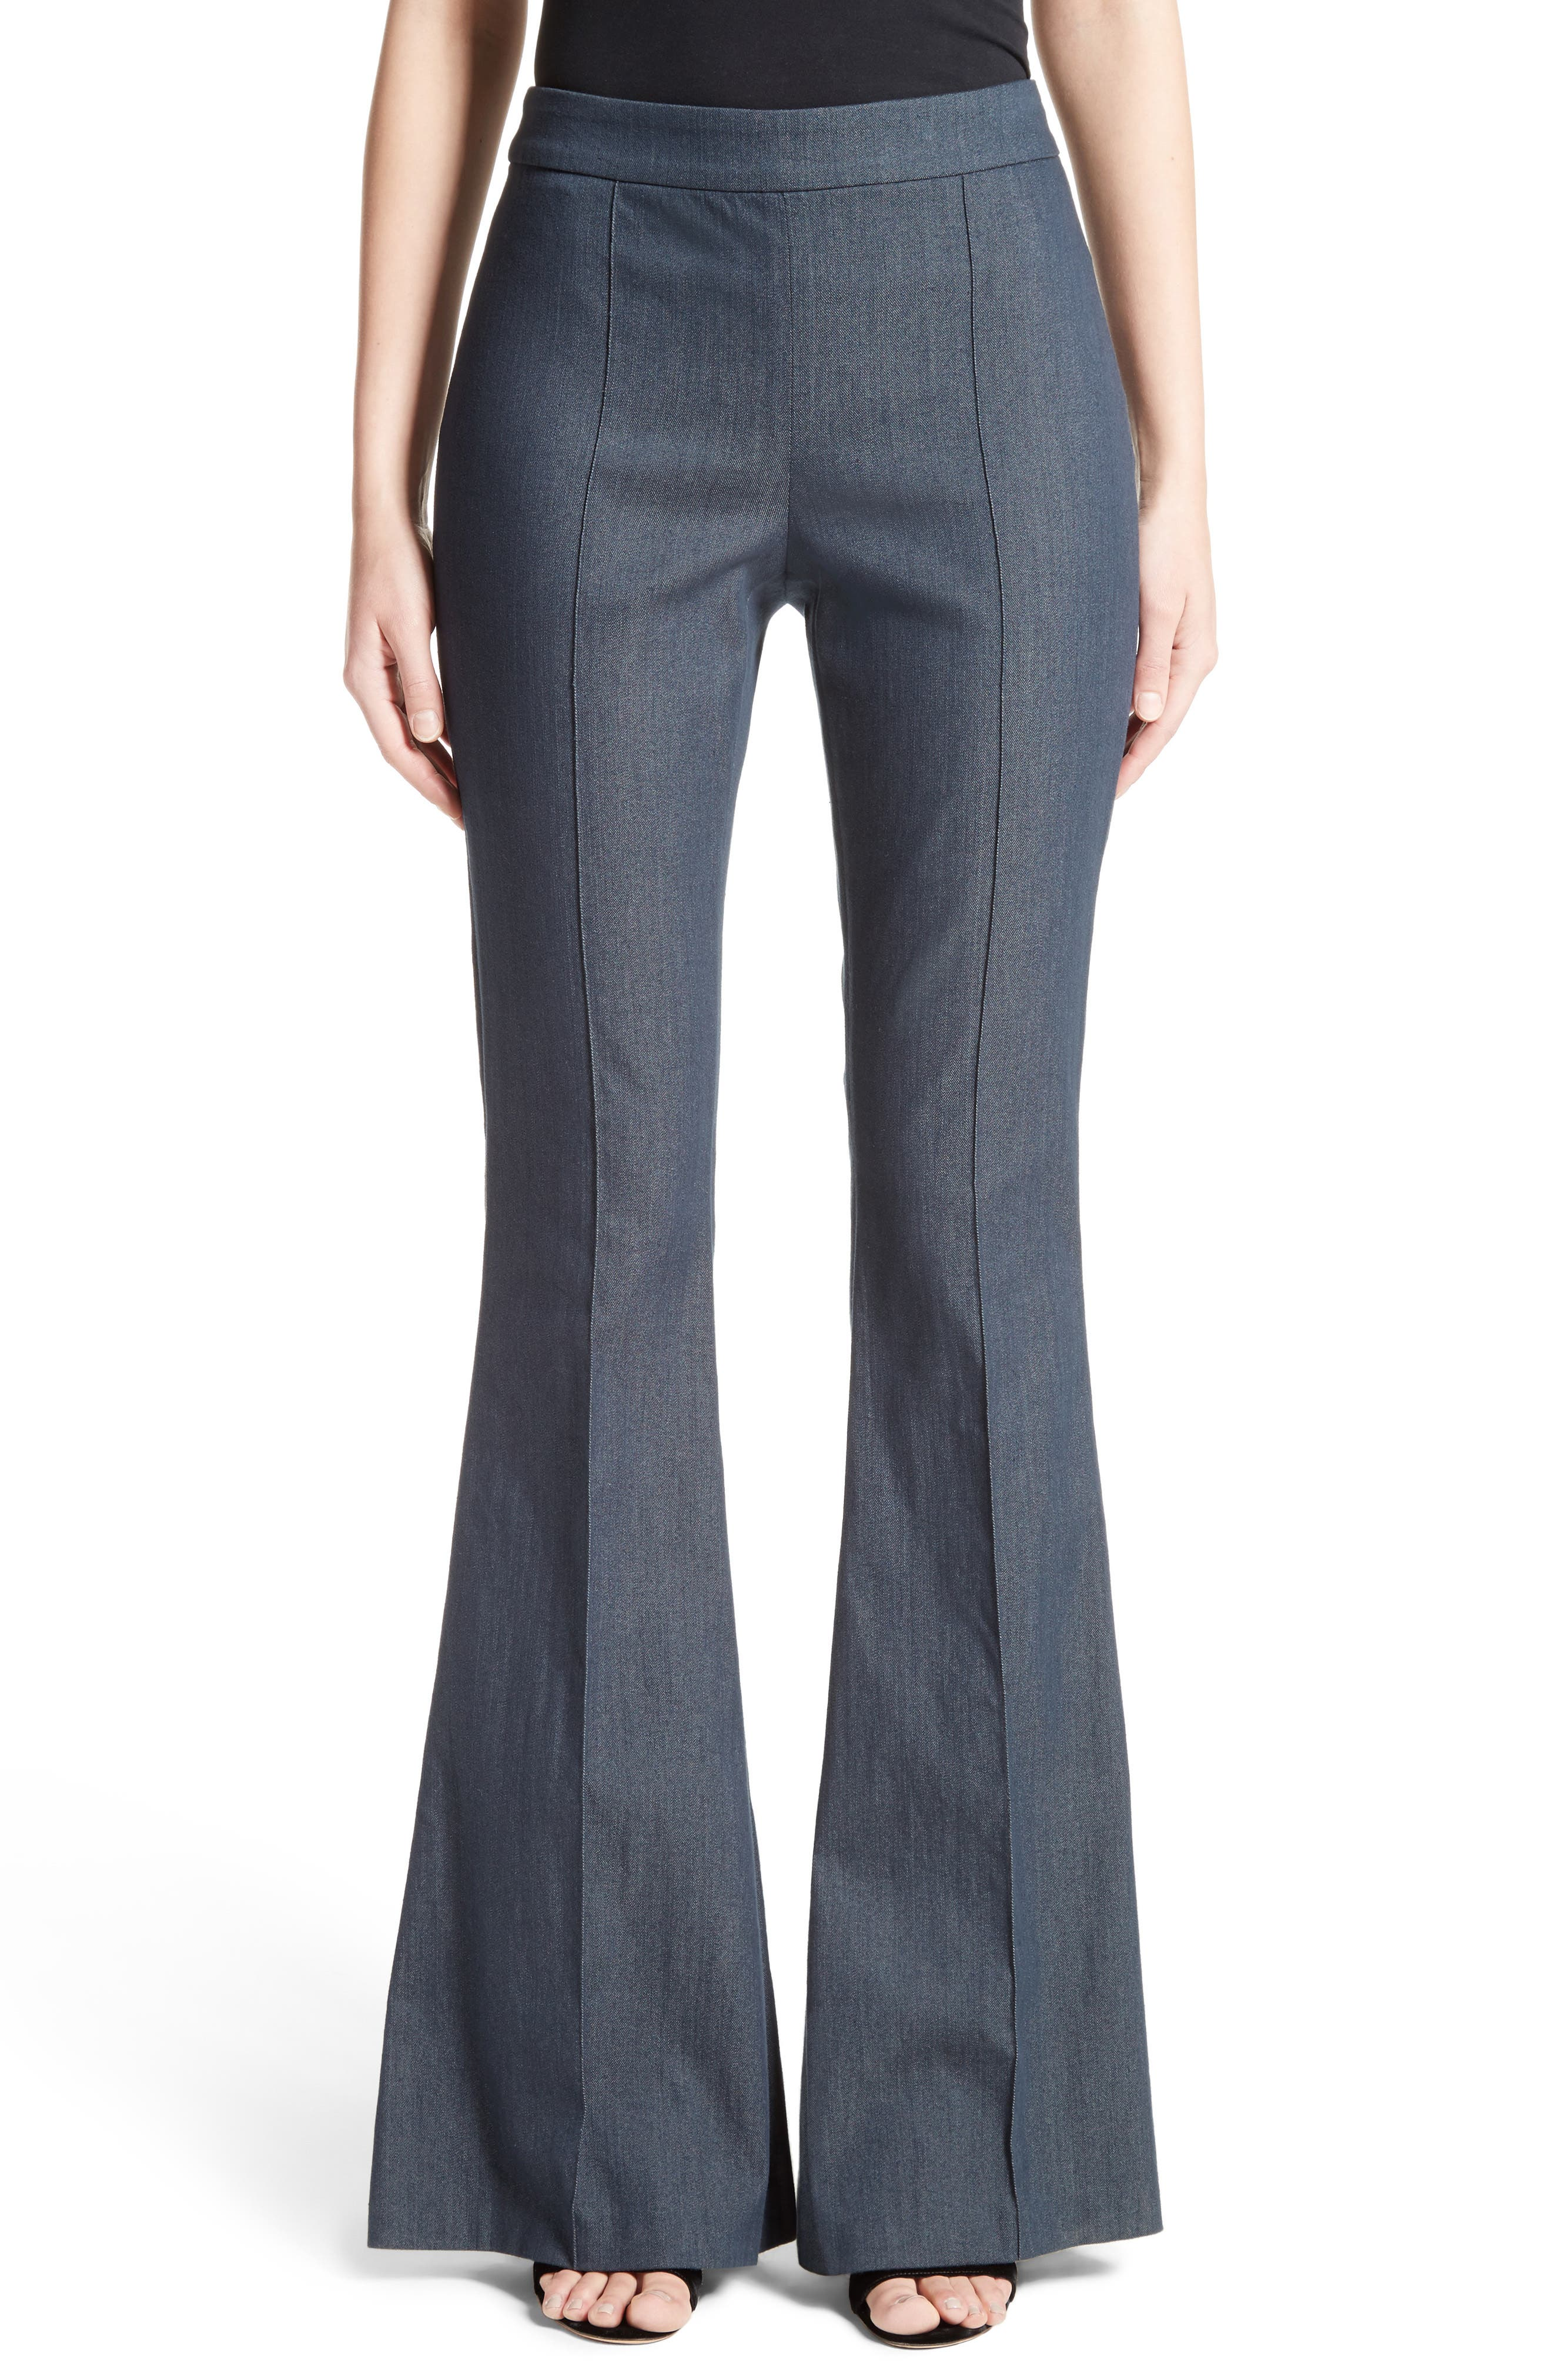 Stretch Denim Flare Pants,                             Main thumbnail 1, color,                             400